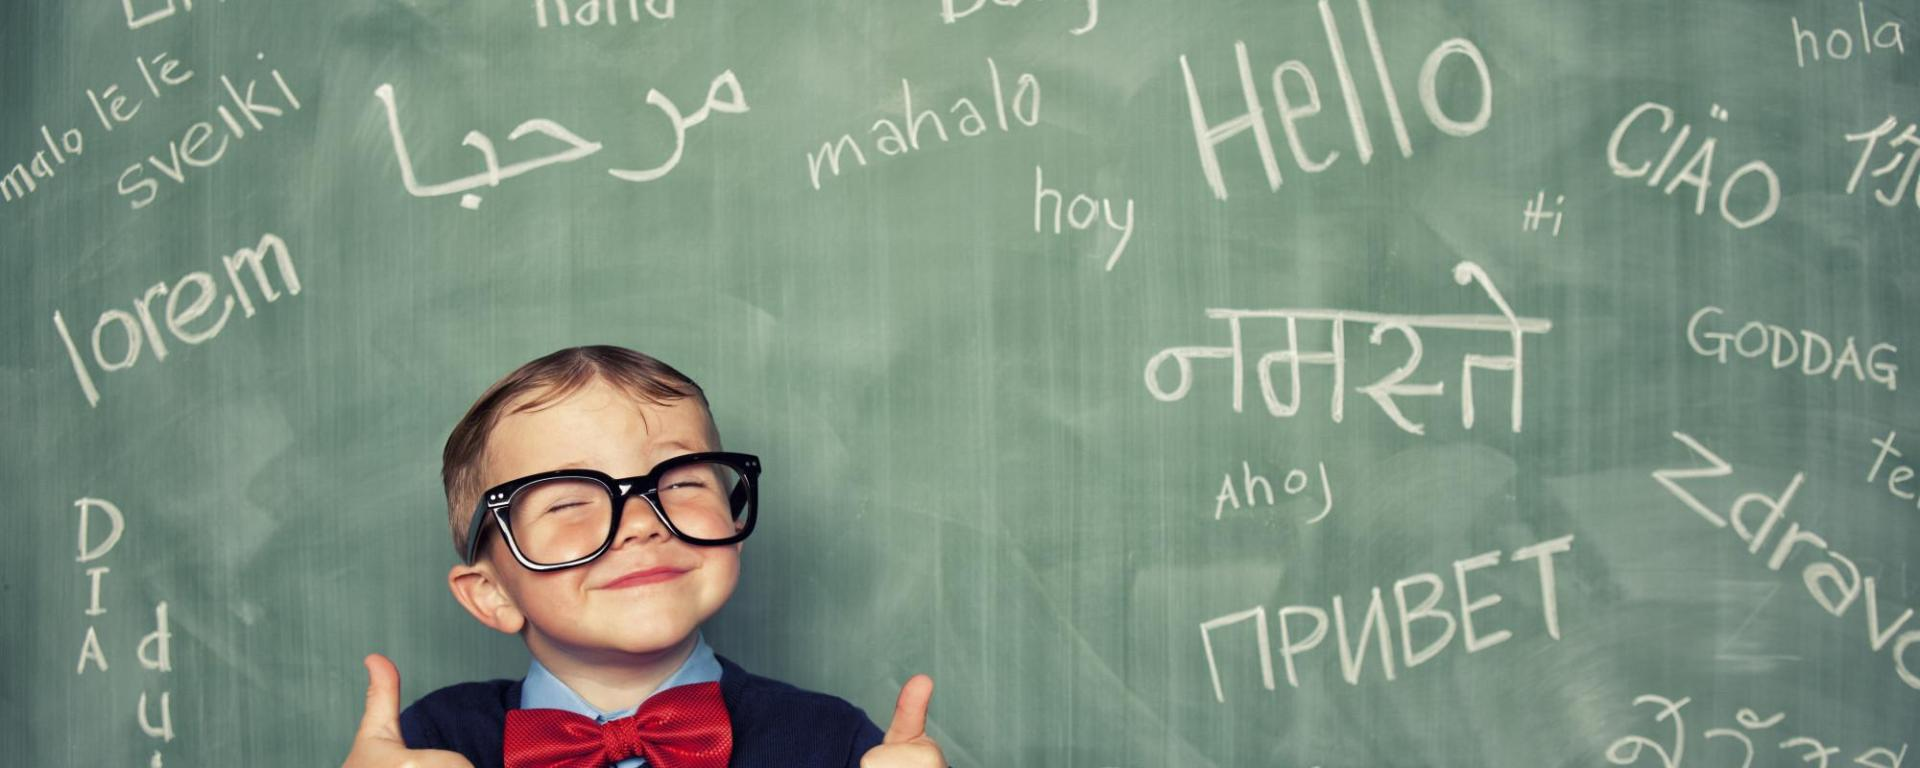 , LONDON'S LEARNING: TOP TIPS FOR LEARNING A NEW LANGUAGE